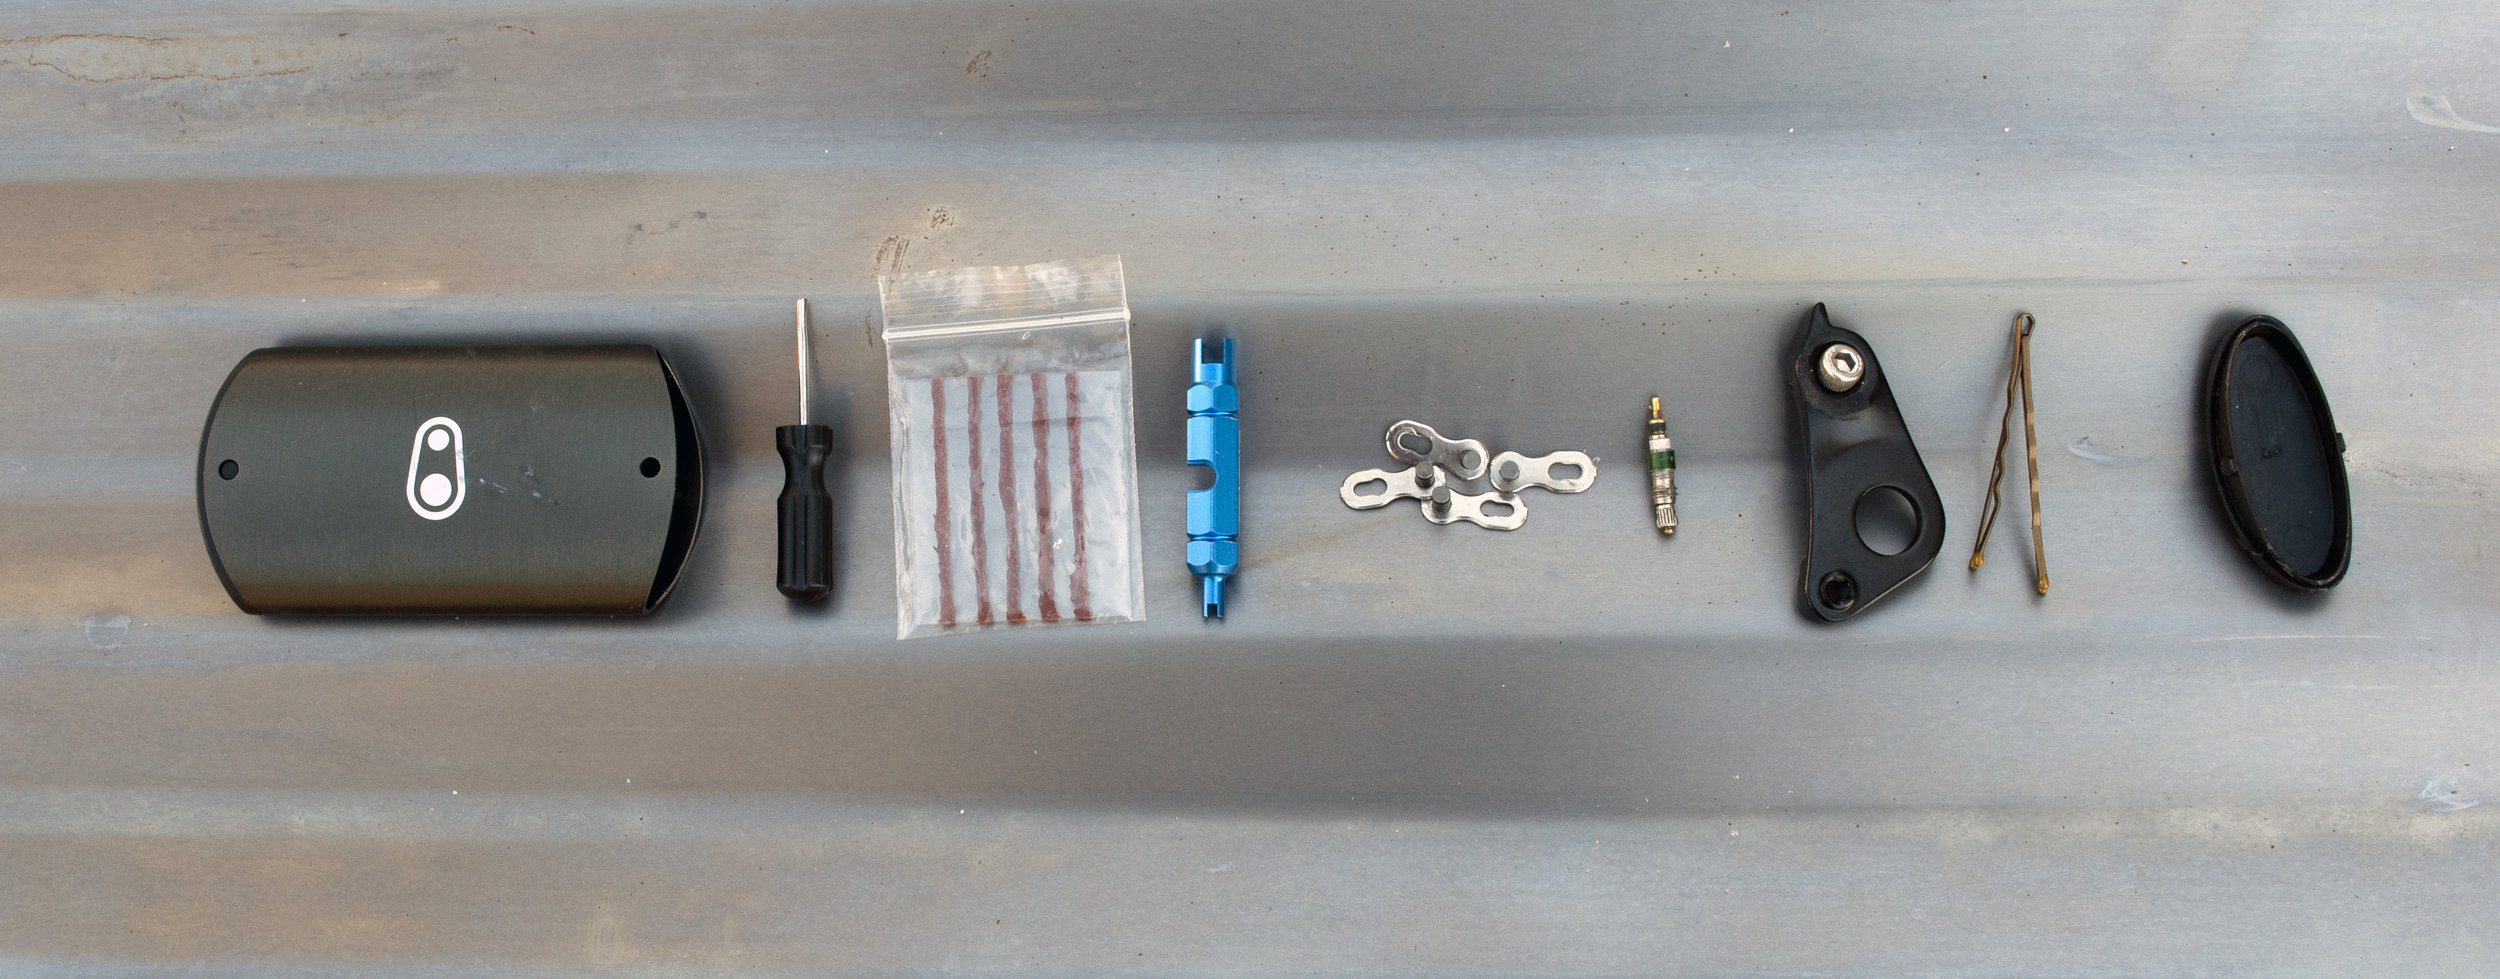 Mountain Bike Tool Kit